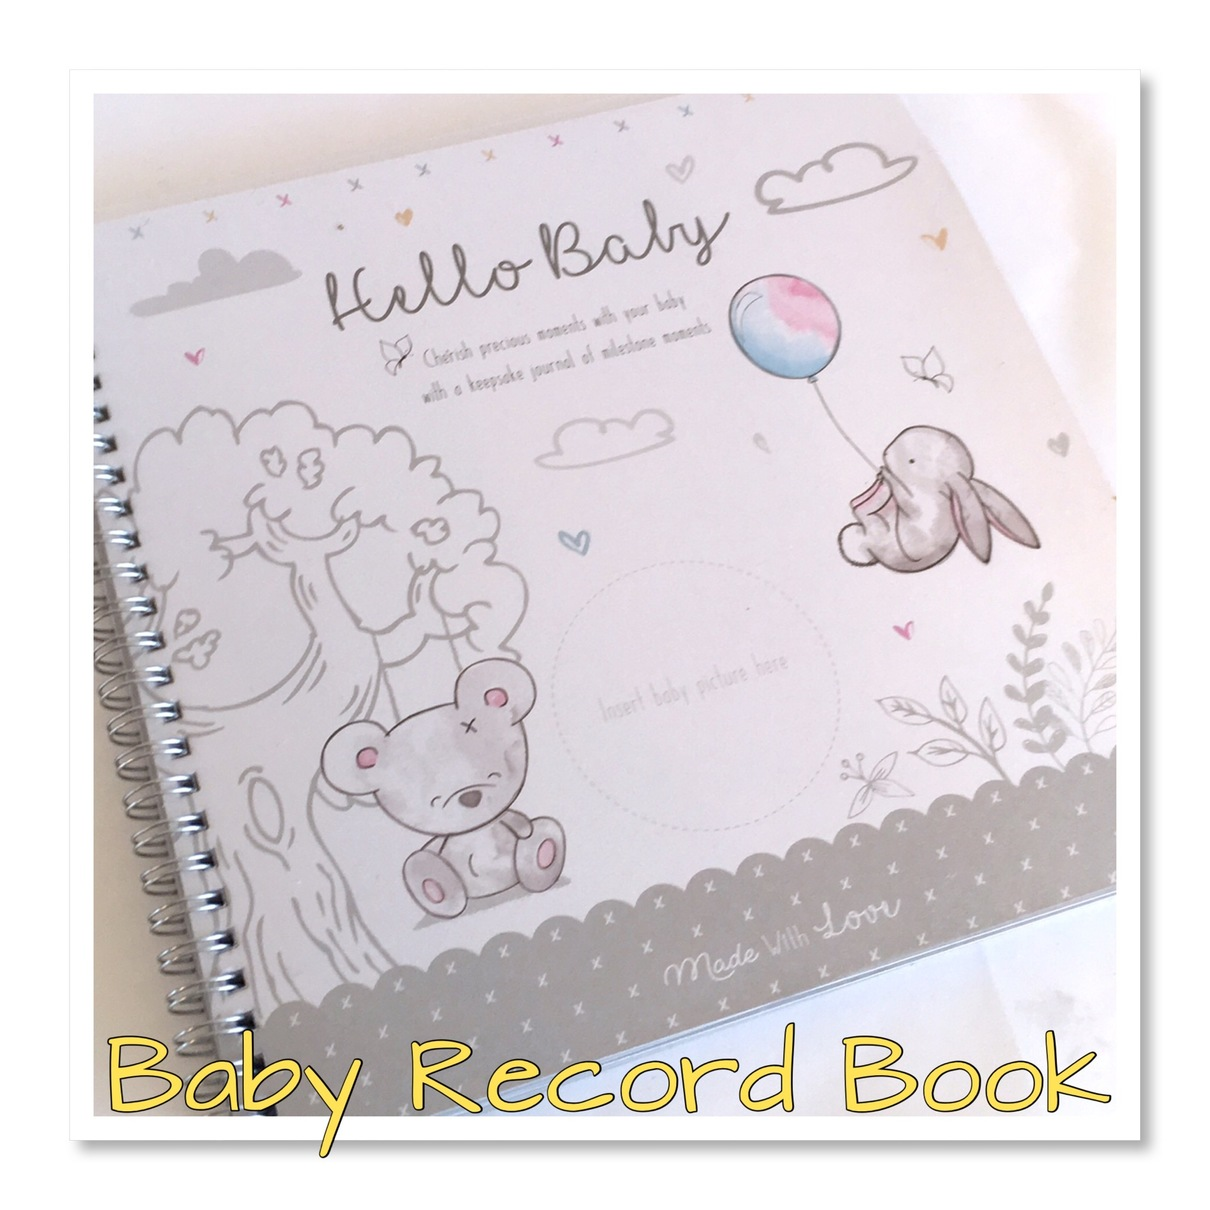 Hugs & Kisses Record Book First Year